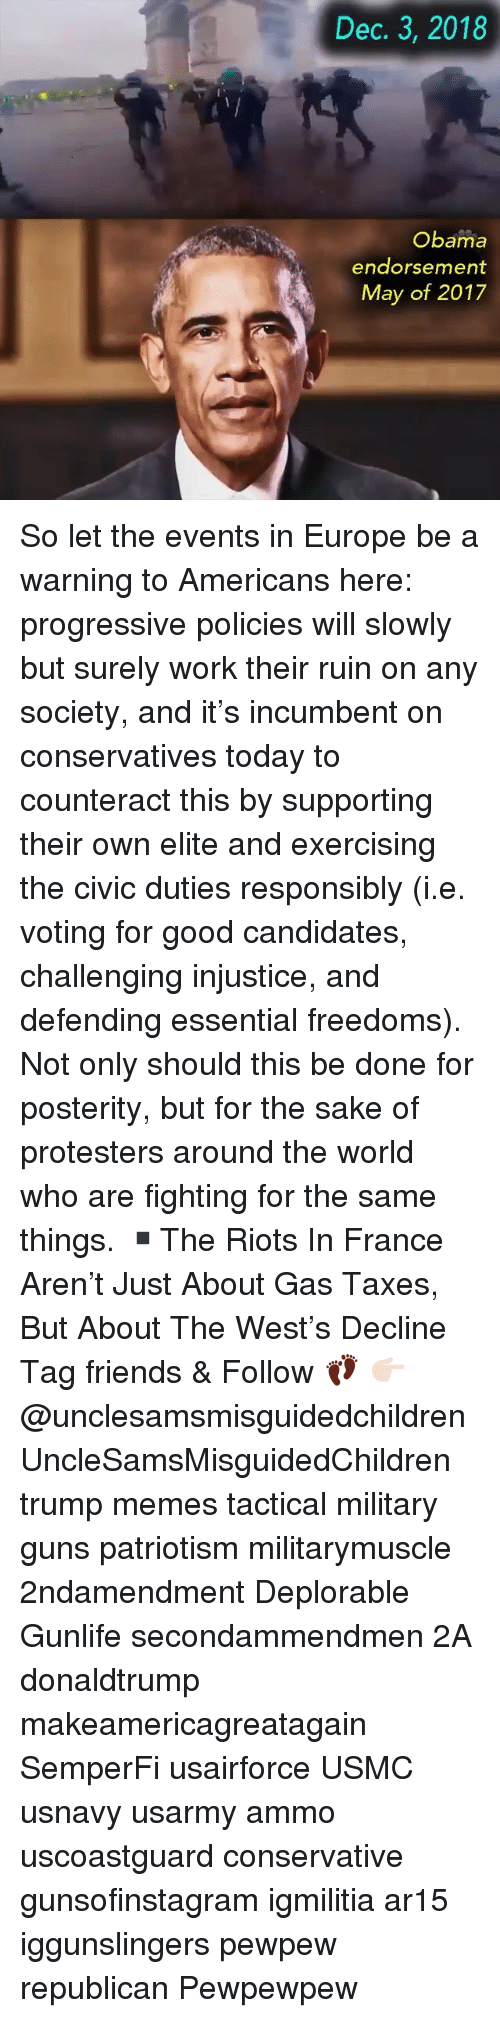 riots: Dec. 3, 2018  Obama  endorsement  May of 2017 So let the events in Europe be a warning to Americans here: progressive policies will slowly but surely work their ruin on any society, and it's incumbent on conservatives today to counteract this by supporting their own elite and exercising the civic duties responsibly (i.e. voting for good candidates, challenging injustice, and defending essential freedoms). Not only should this be done for posterity, but for the sake of protesters around the world who are fighting for the same things. ▪️The Riots In France Aren't Just About Gas Taxes, But About The West's Decline Tag friends & Follow 👣 👉🏻 @unclesamsmisguidedchildren UncleSamsMisguidedChildren trump memes tactical military guns patriotism militarymuscle 2ndamendment Deplorable Gunlife secondammendmen 2A donaldtrump makeamericagreatagain SemperFi usairforce USMC usnavy usarmy ammo uscoastguard conservative gunsofinstagram igmilitia ar15 iggunslingers pewpew republican Pewpewpew